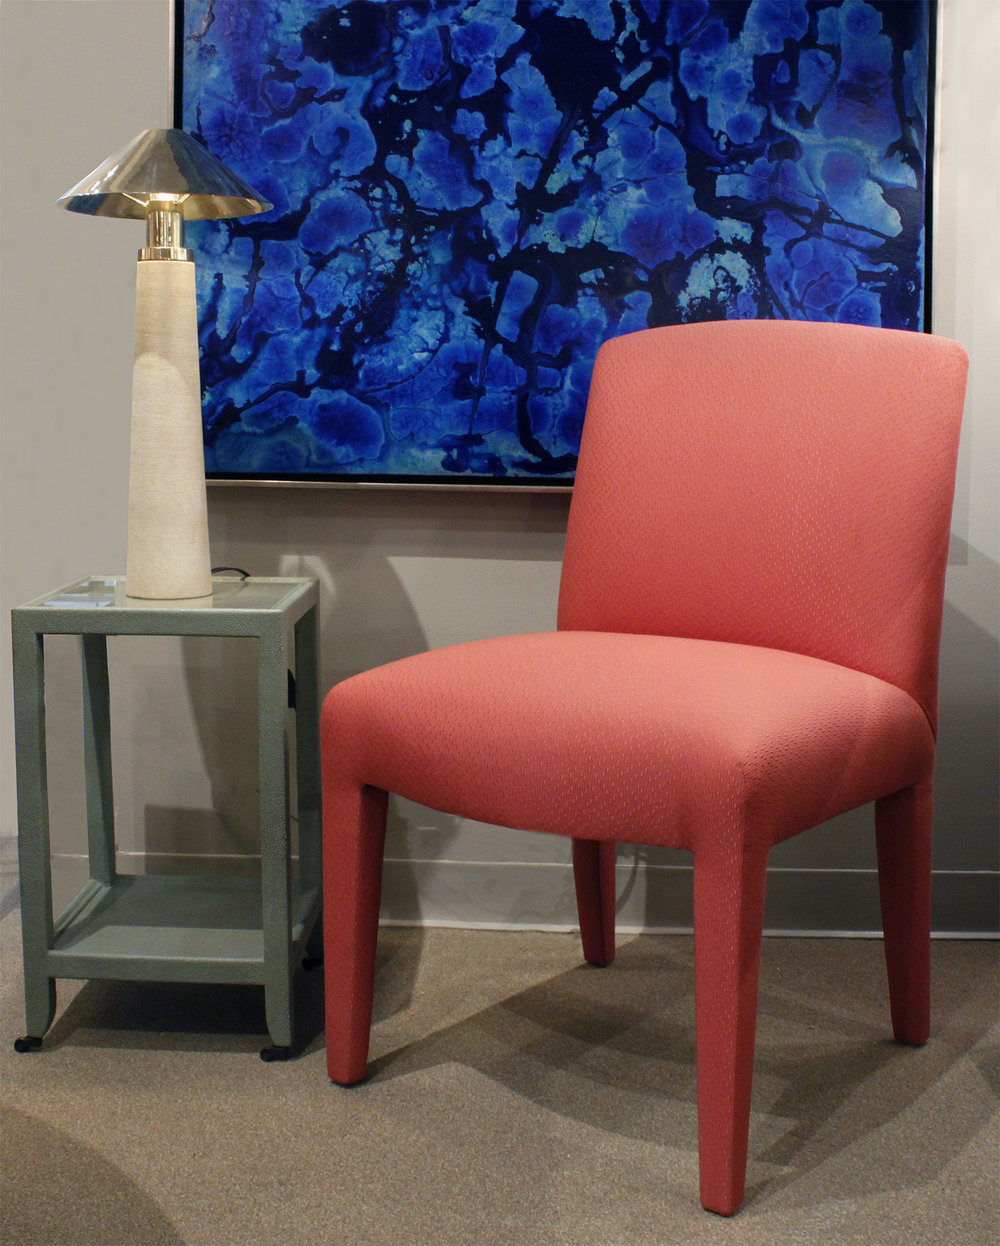 Donghia 120 set of 10 salmon pink diningchairs185 atm.jpg